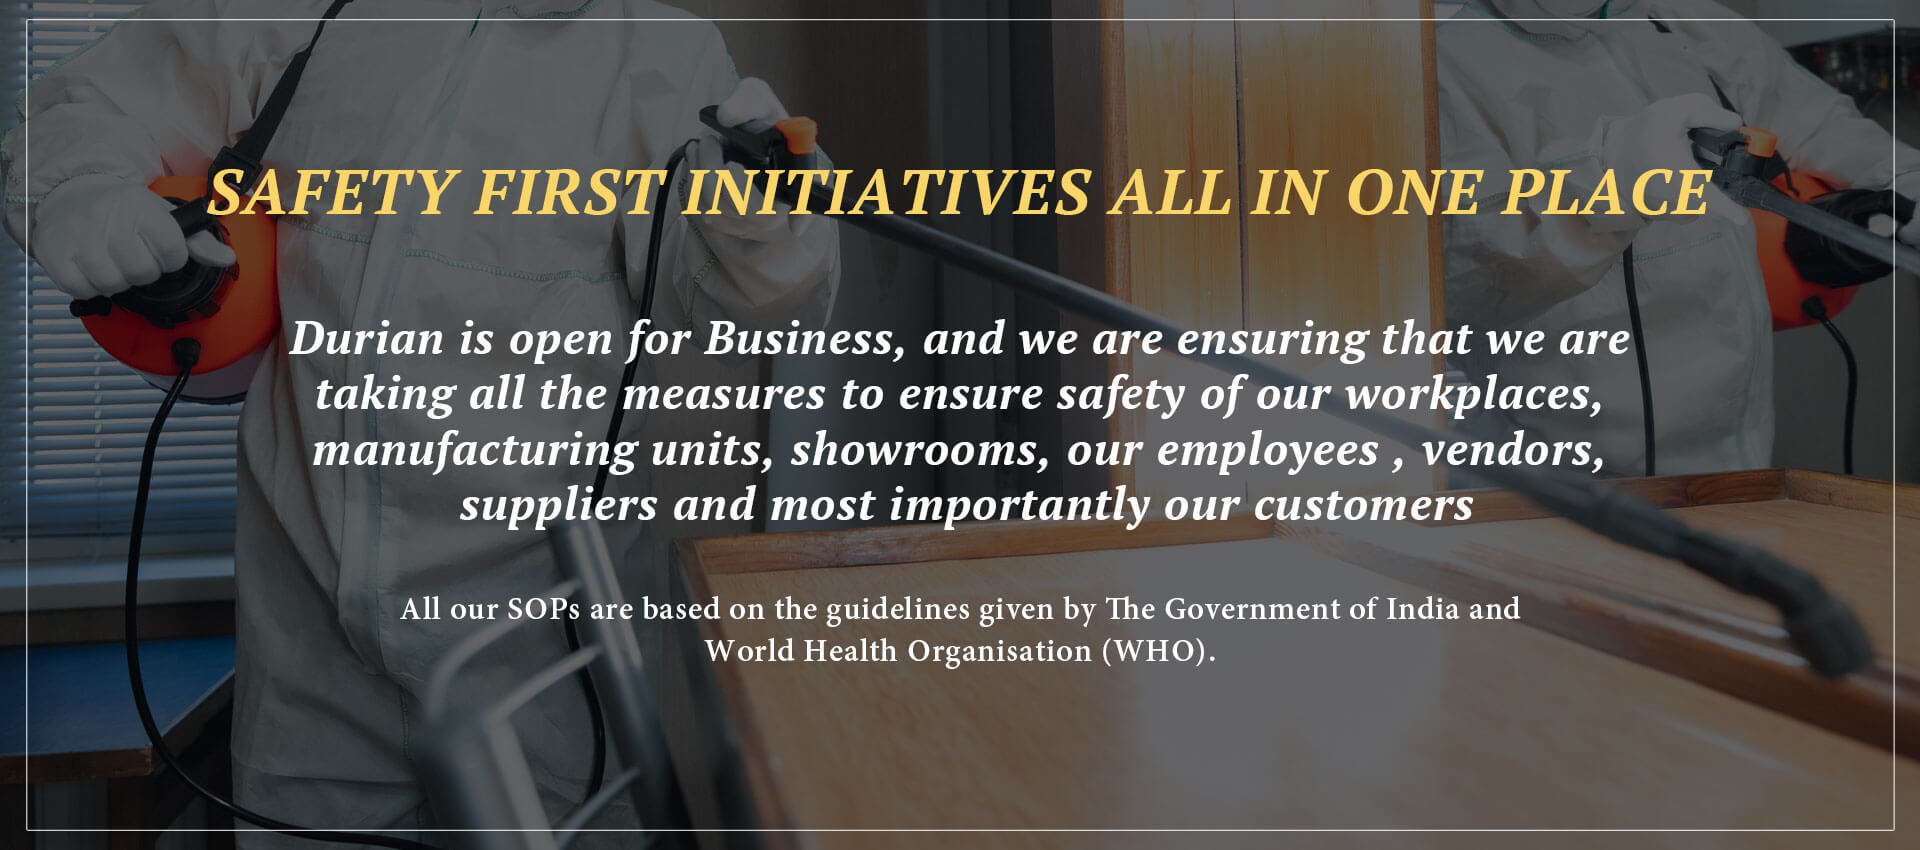 Safety first initiatives all in one place